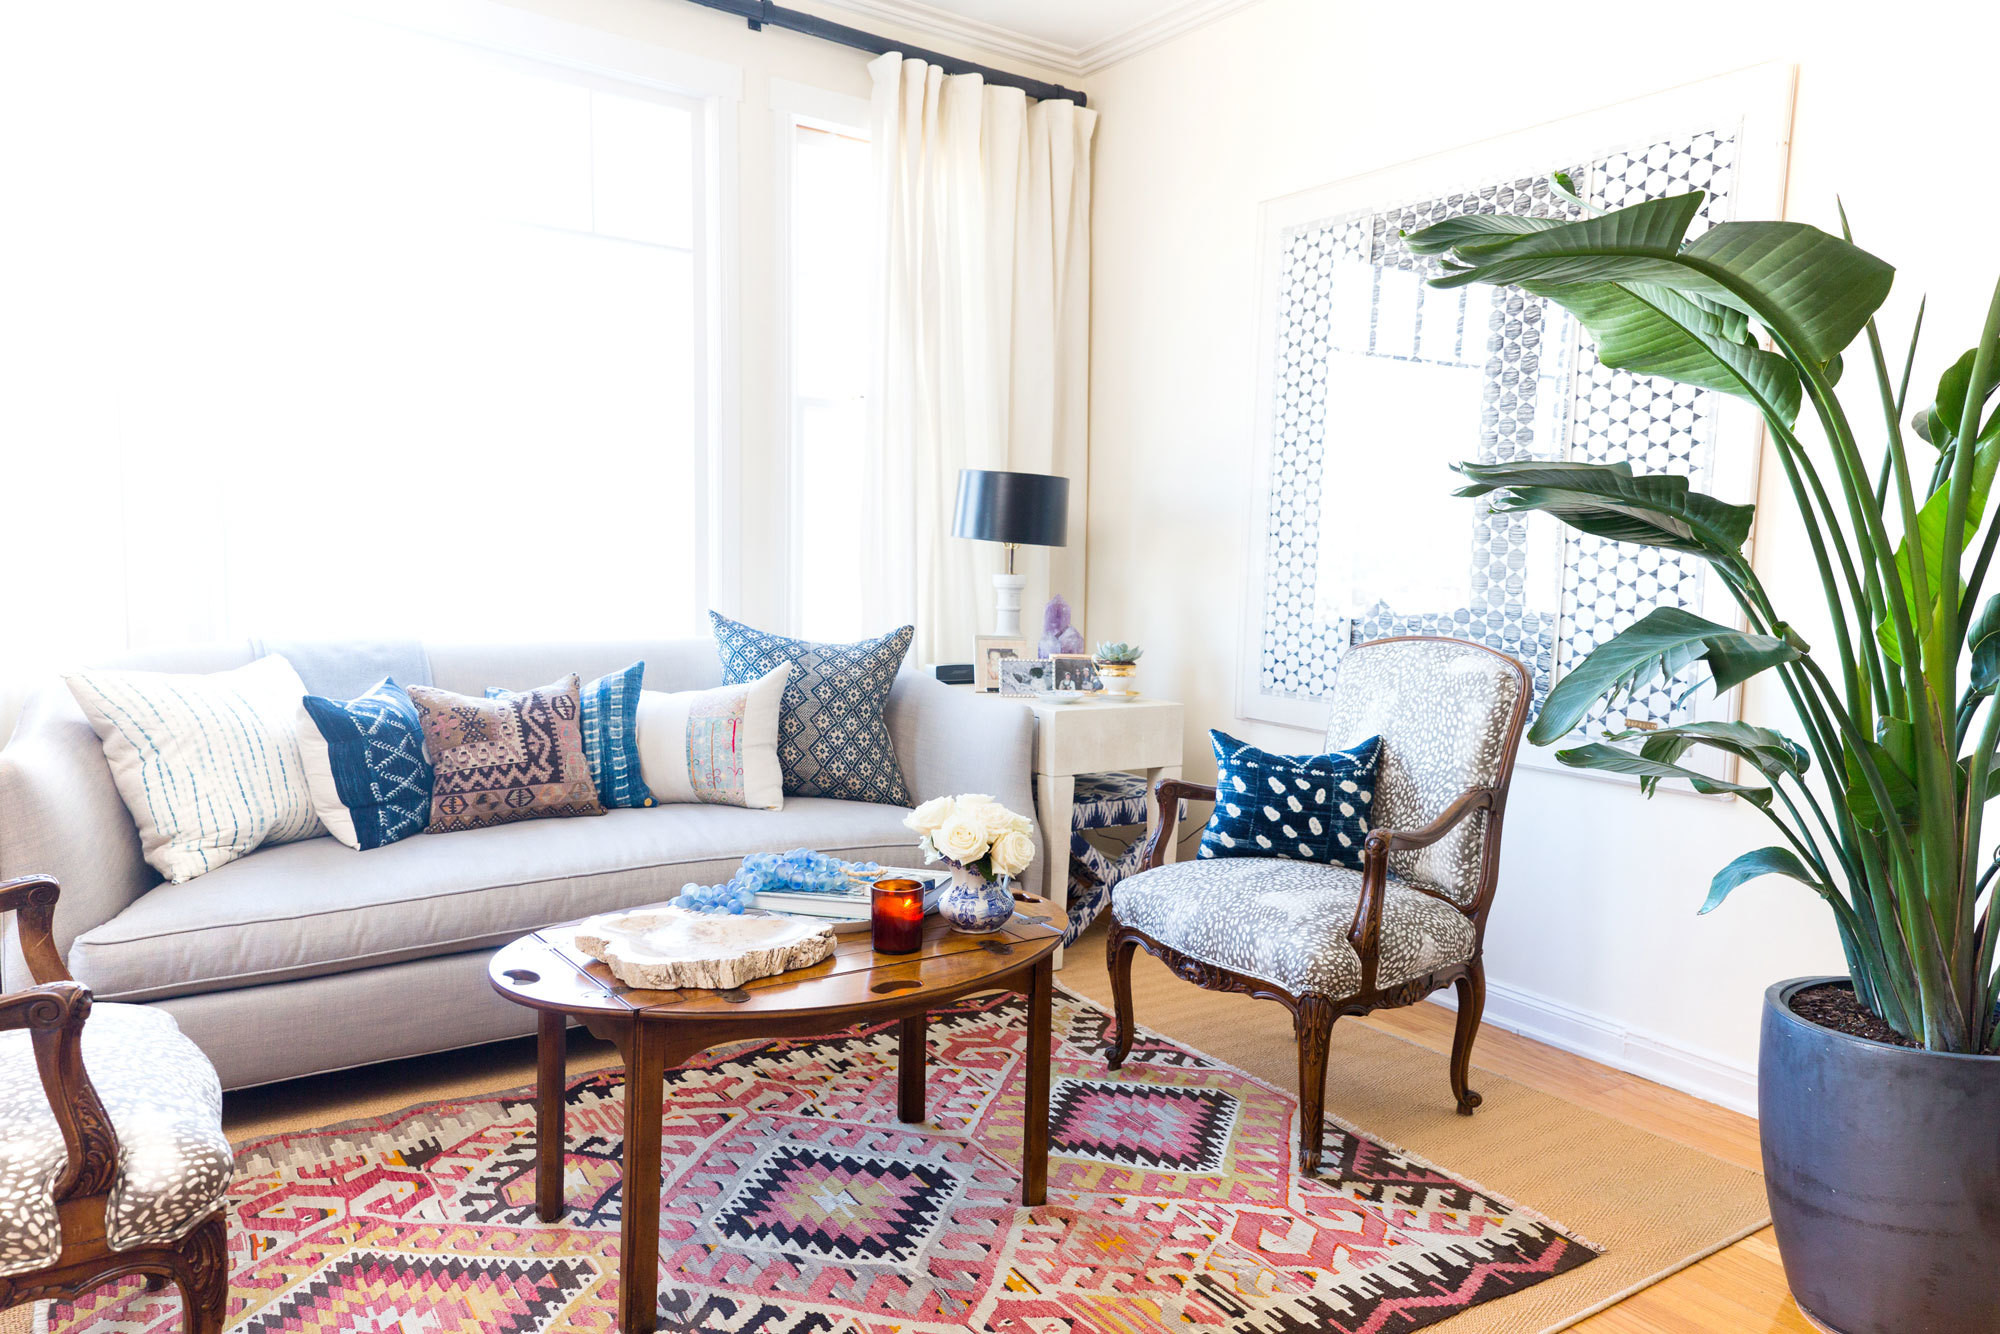 Small Space Living Hacks That Will Make Your Life So Much Easier Spaces Lonny